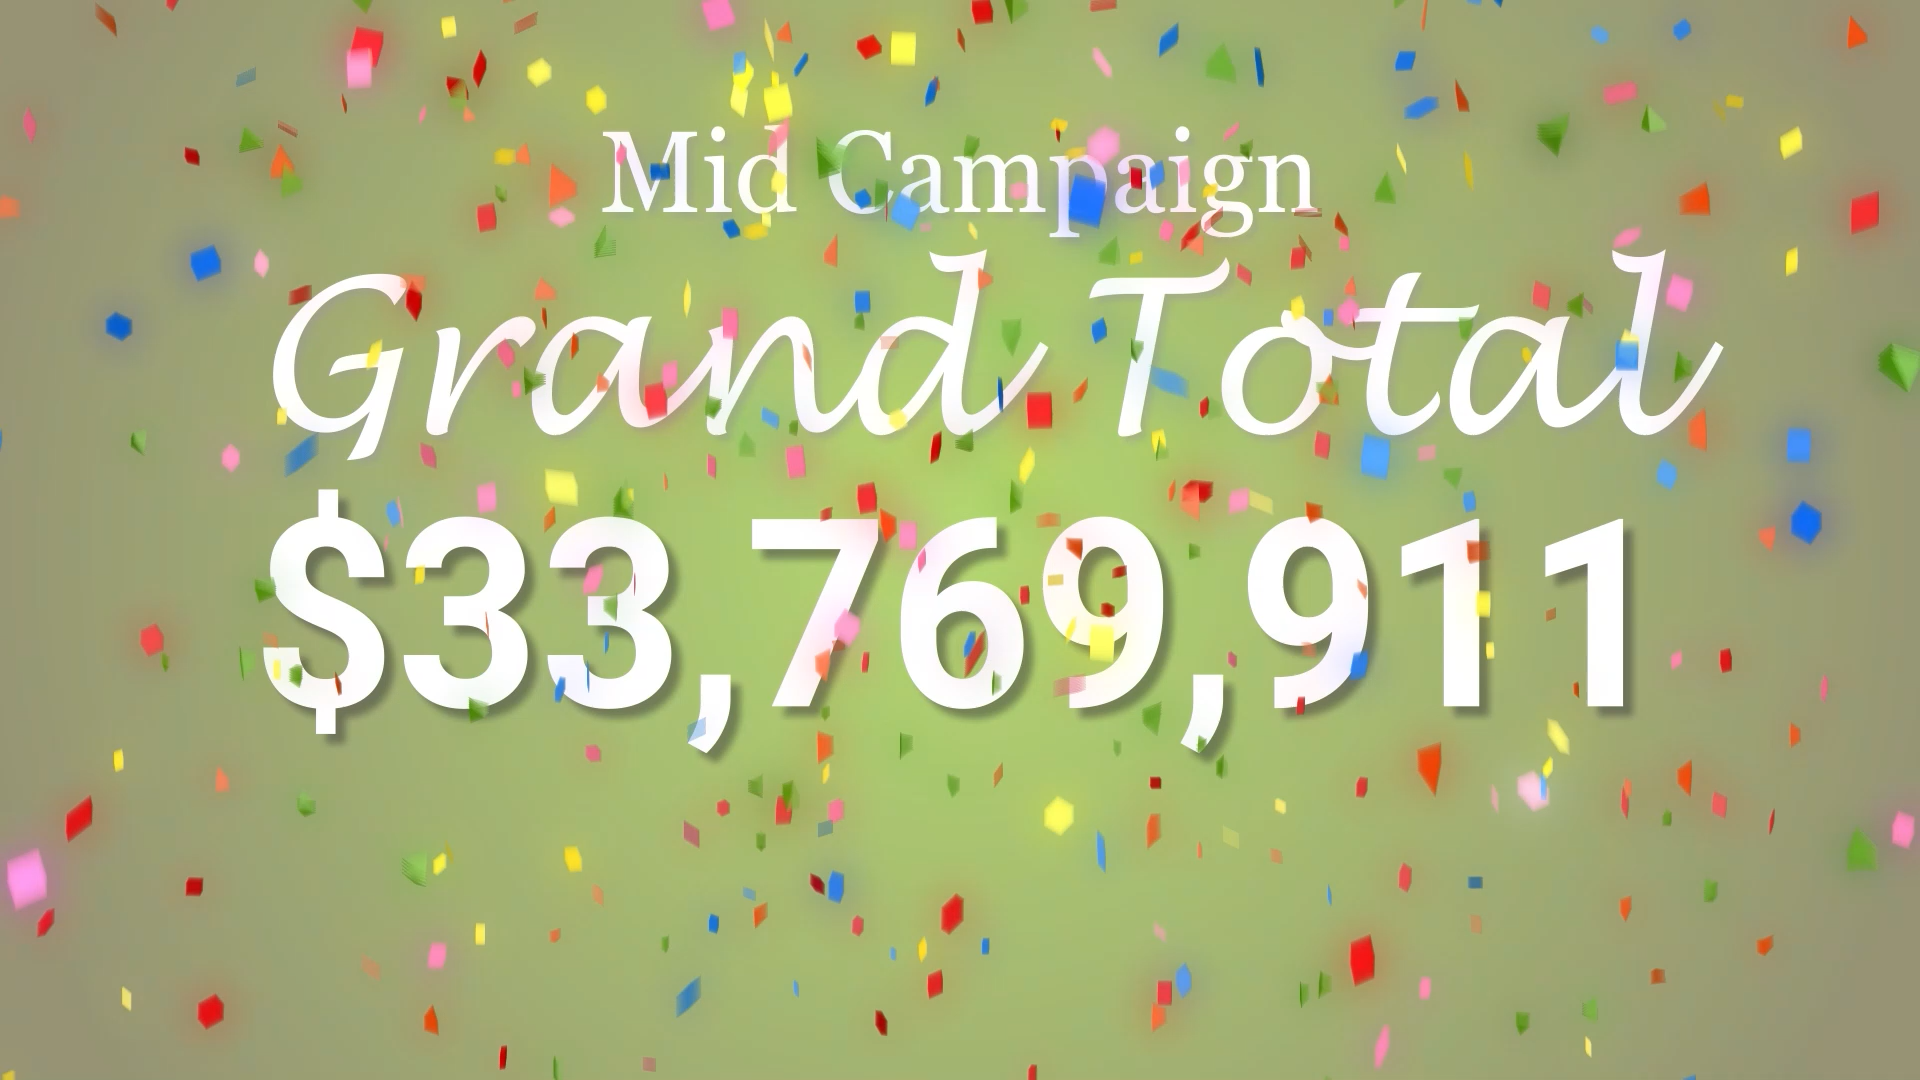 2021 Mid-Campaign Total